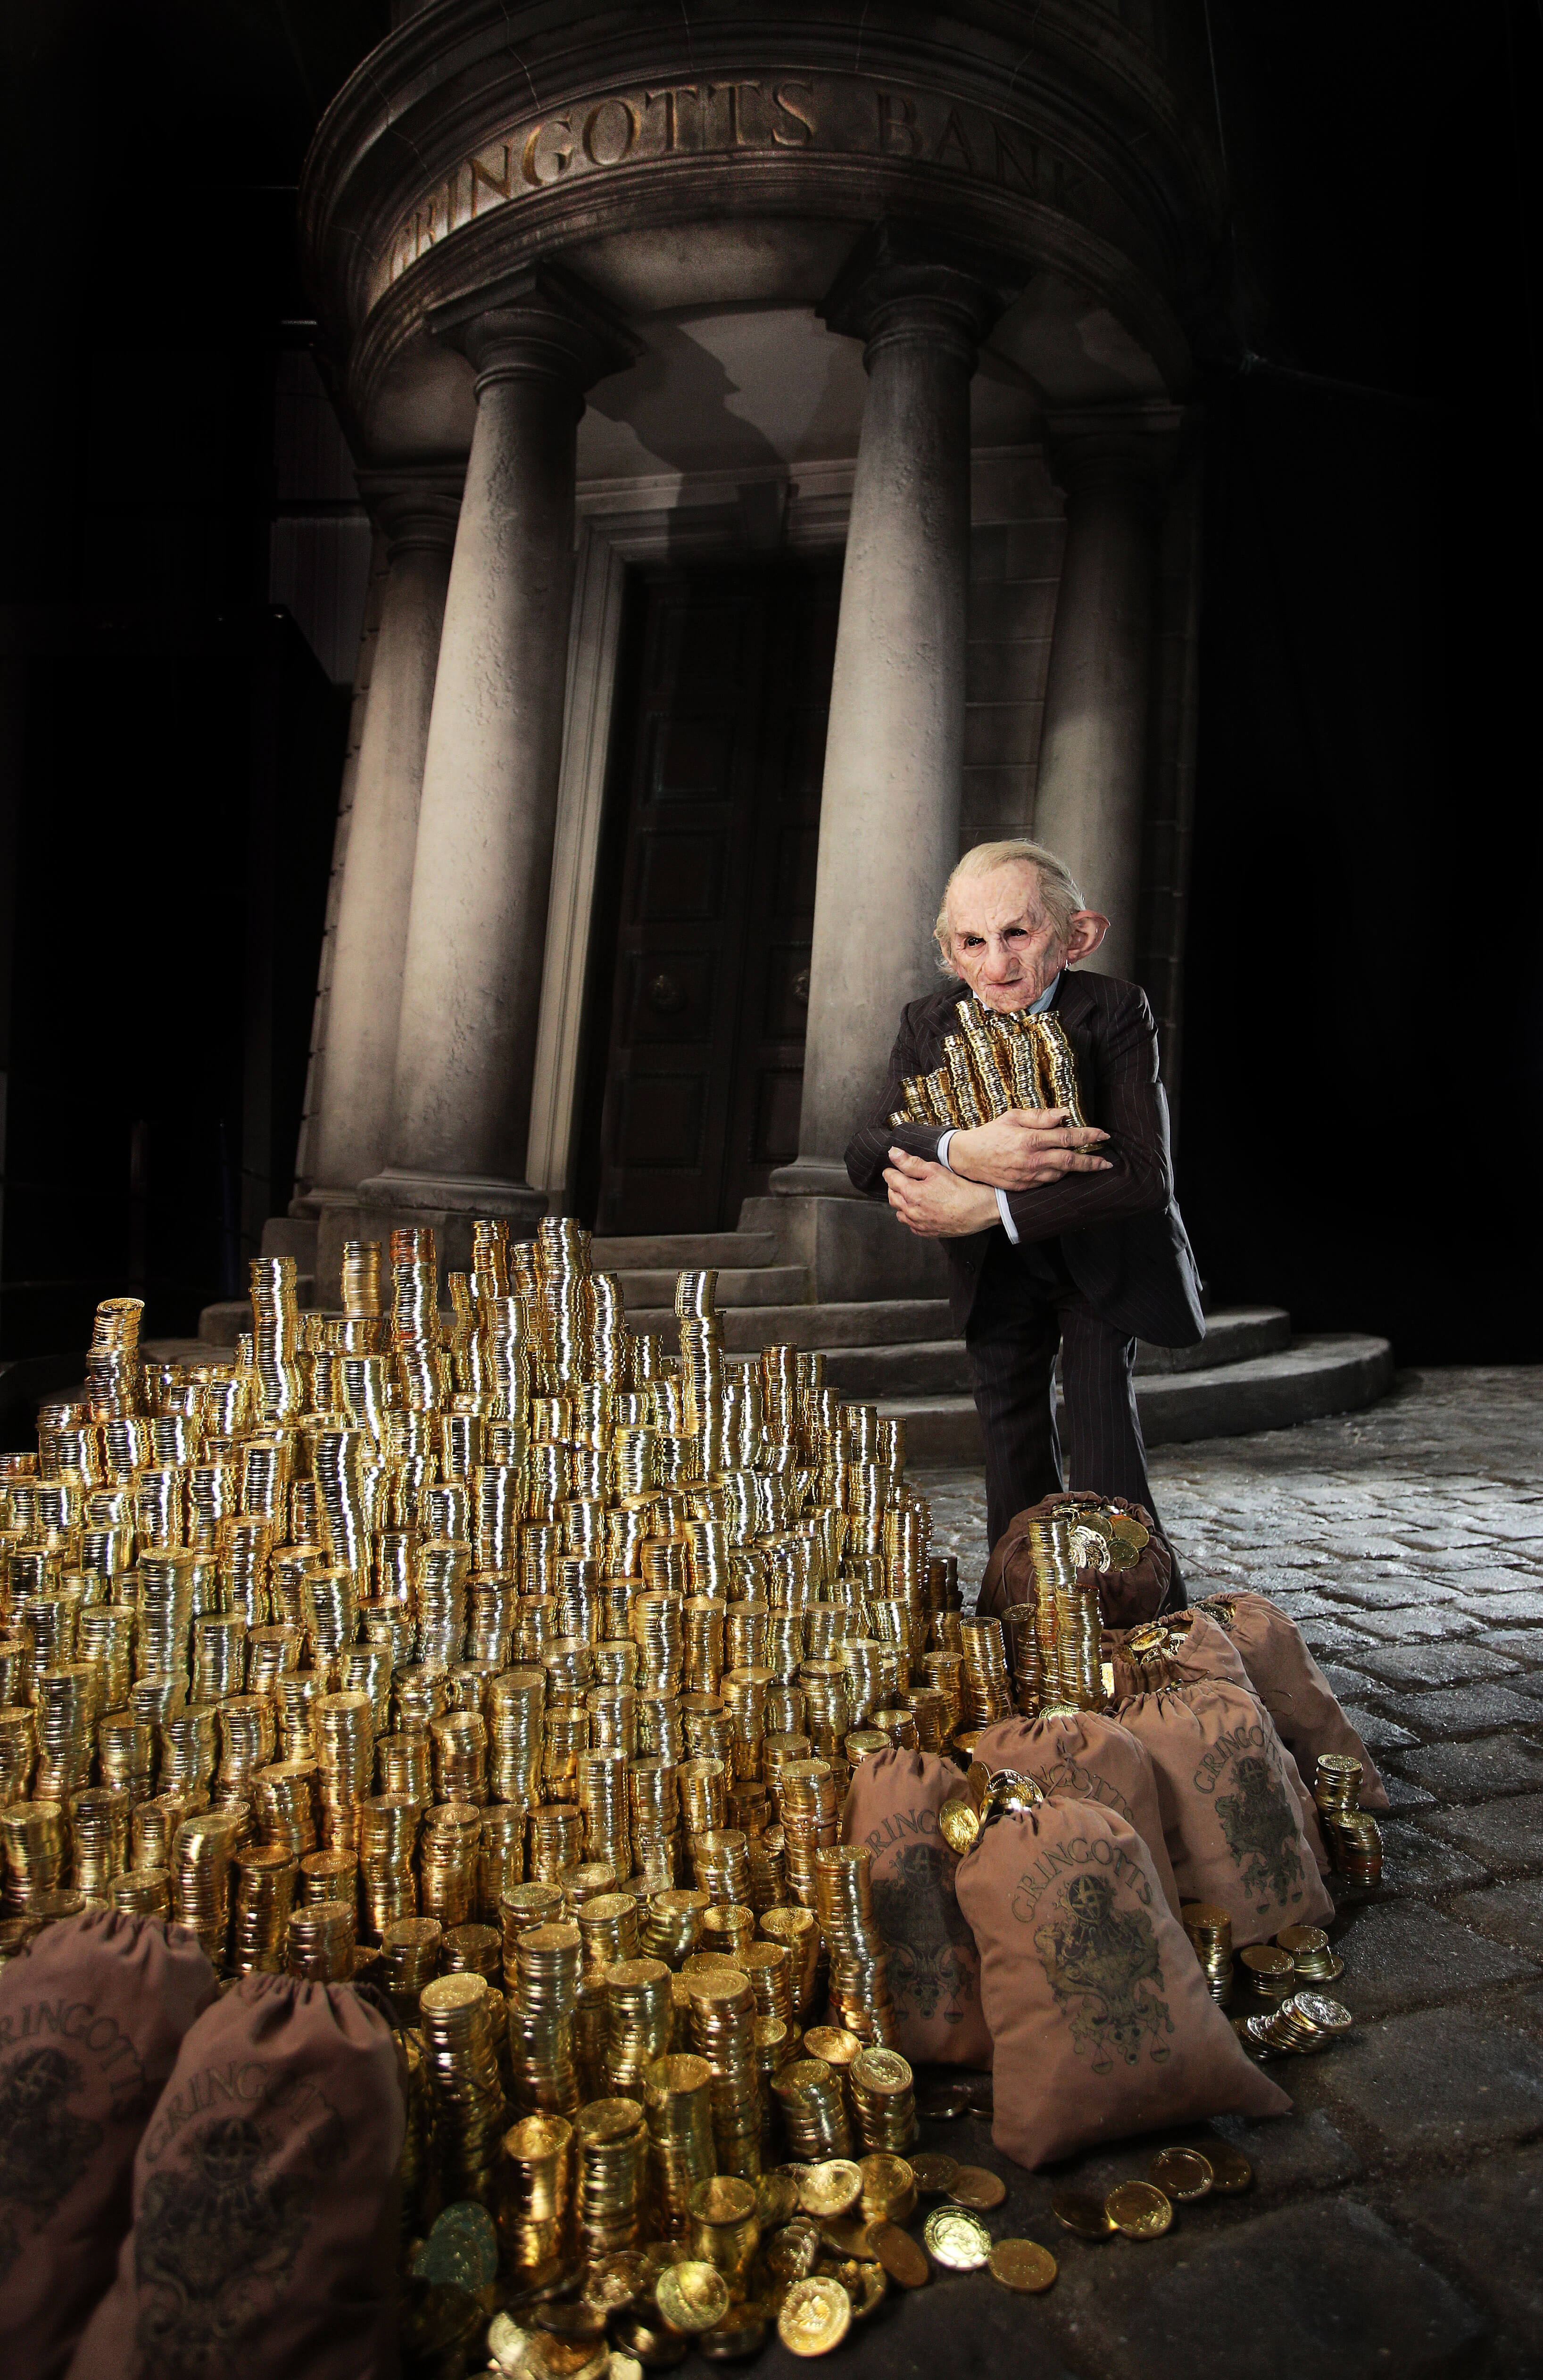 Potterish.com [Year 18] :: Harry Potter, Cursed Child, Fantastic Beasts, JK Rowling, Daniel, Emma & Rupert Fans will be able to visit Gringotts in England